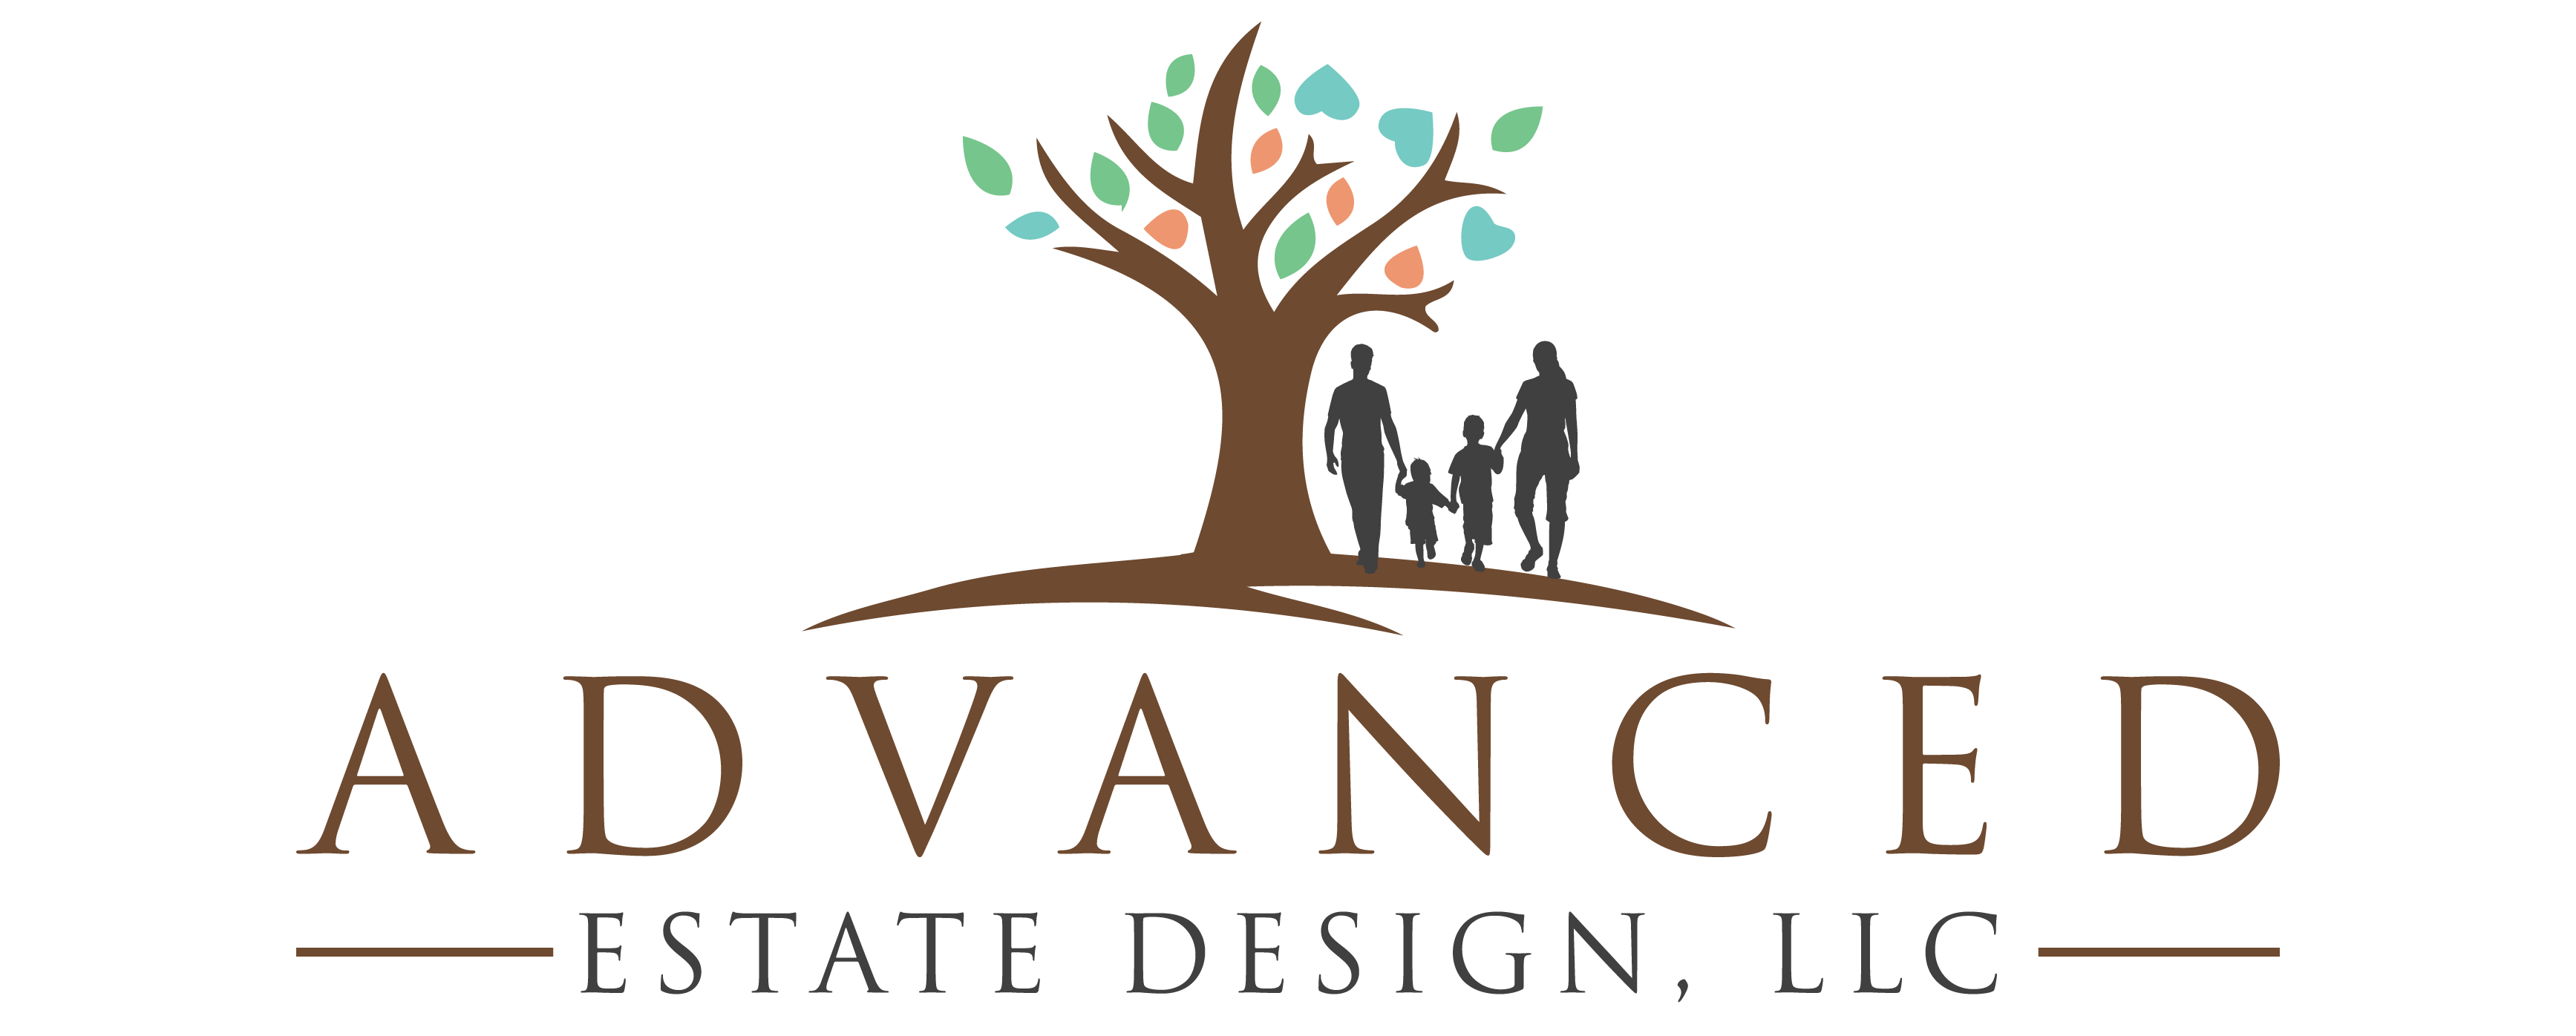 Advanced Estate Design, LLC